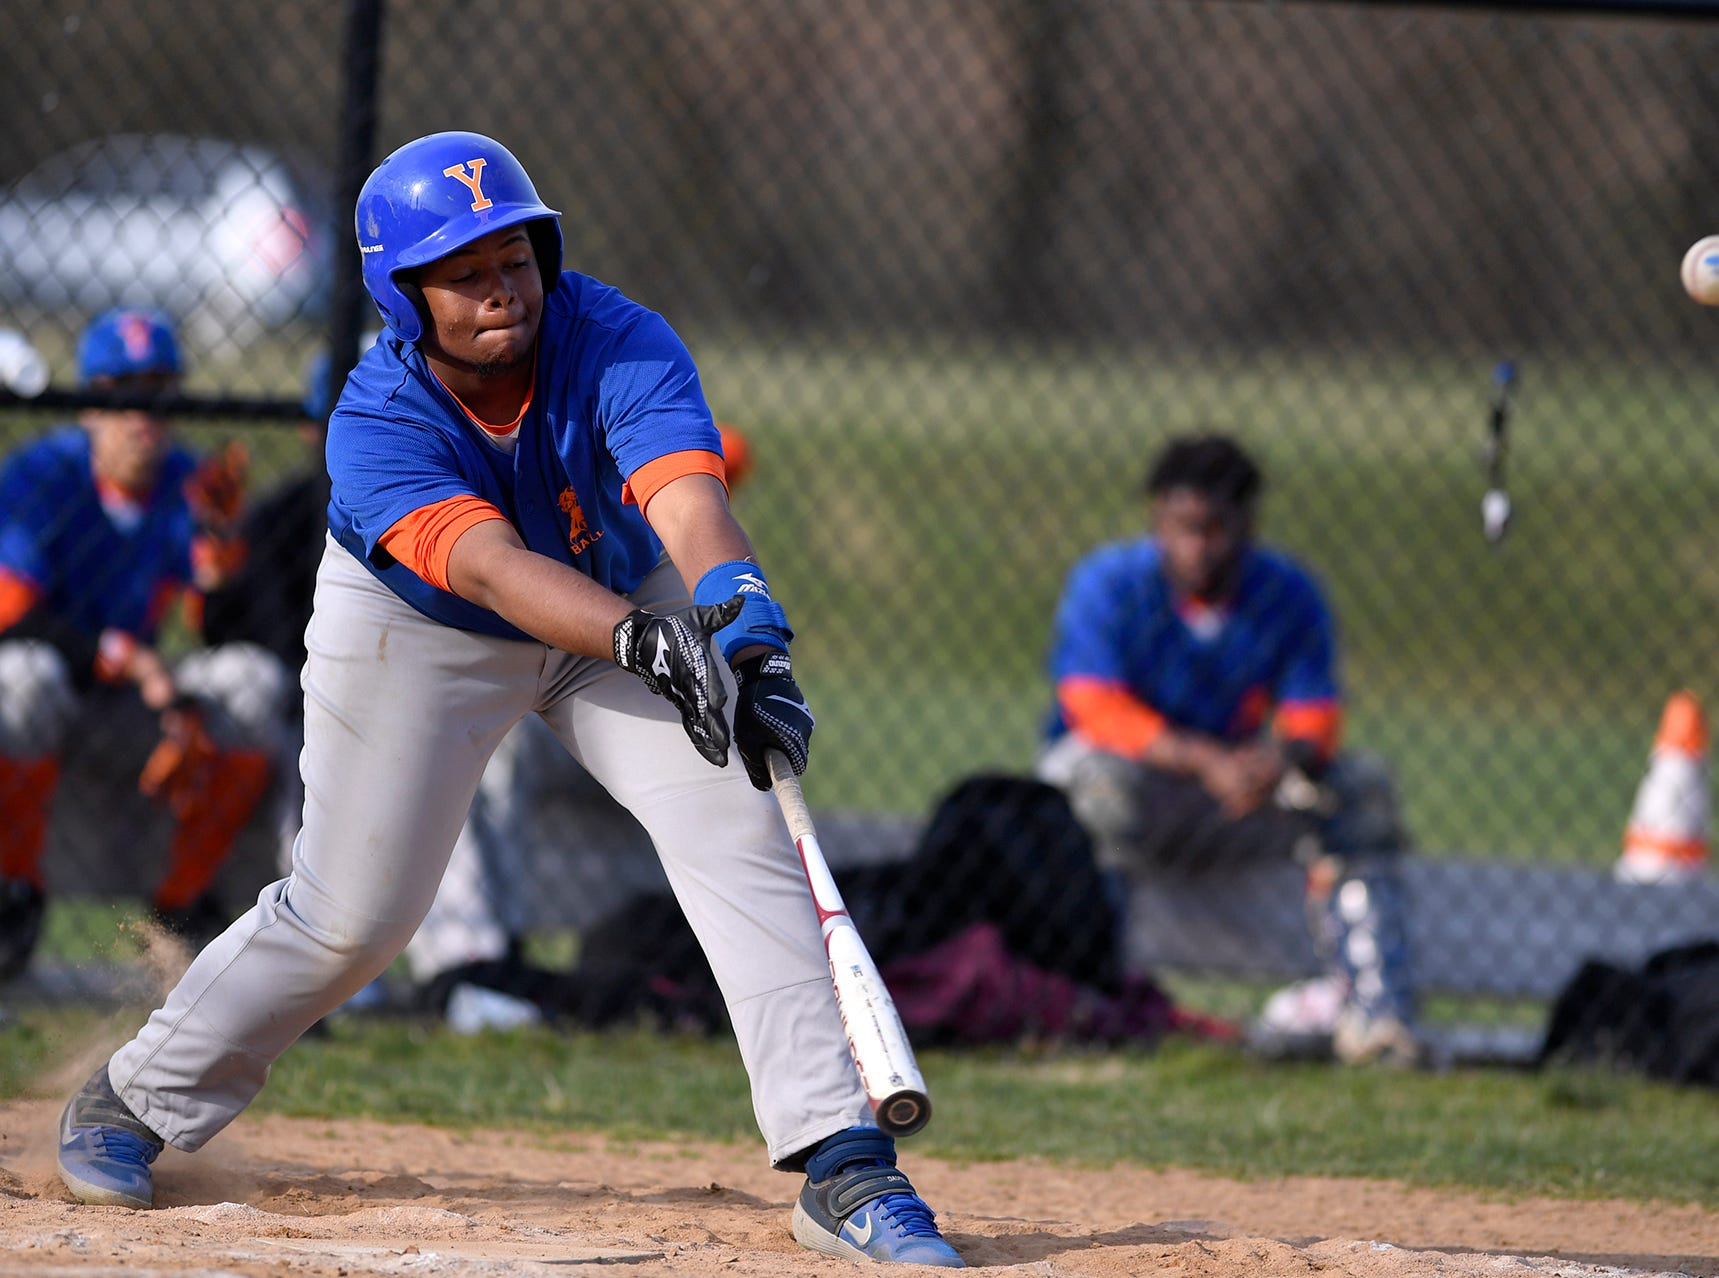 York High's Carlos Angeles Tejeda connects with an RBI single against Hanover, Thursday, April 4, 2019. John A. Pavoncello photo